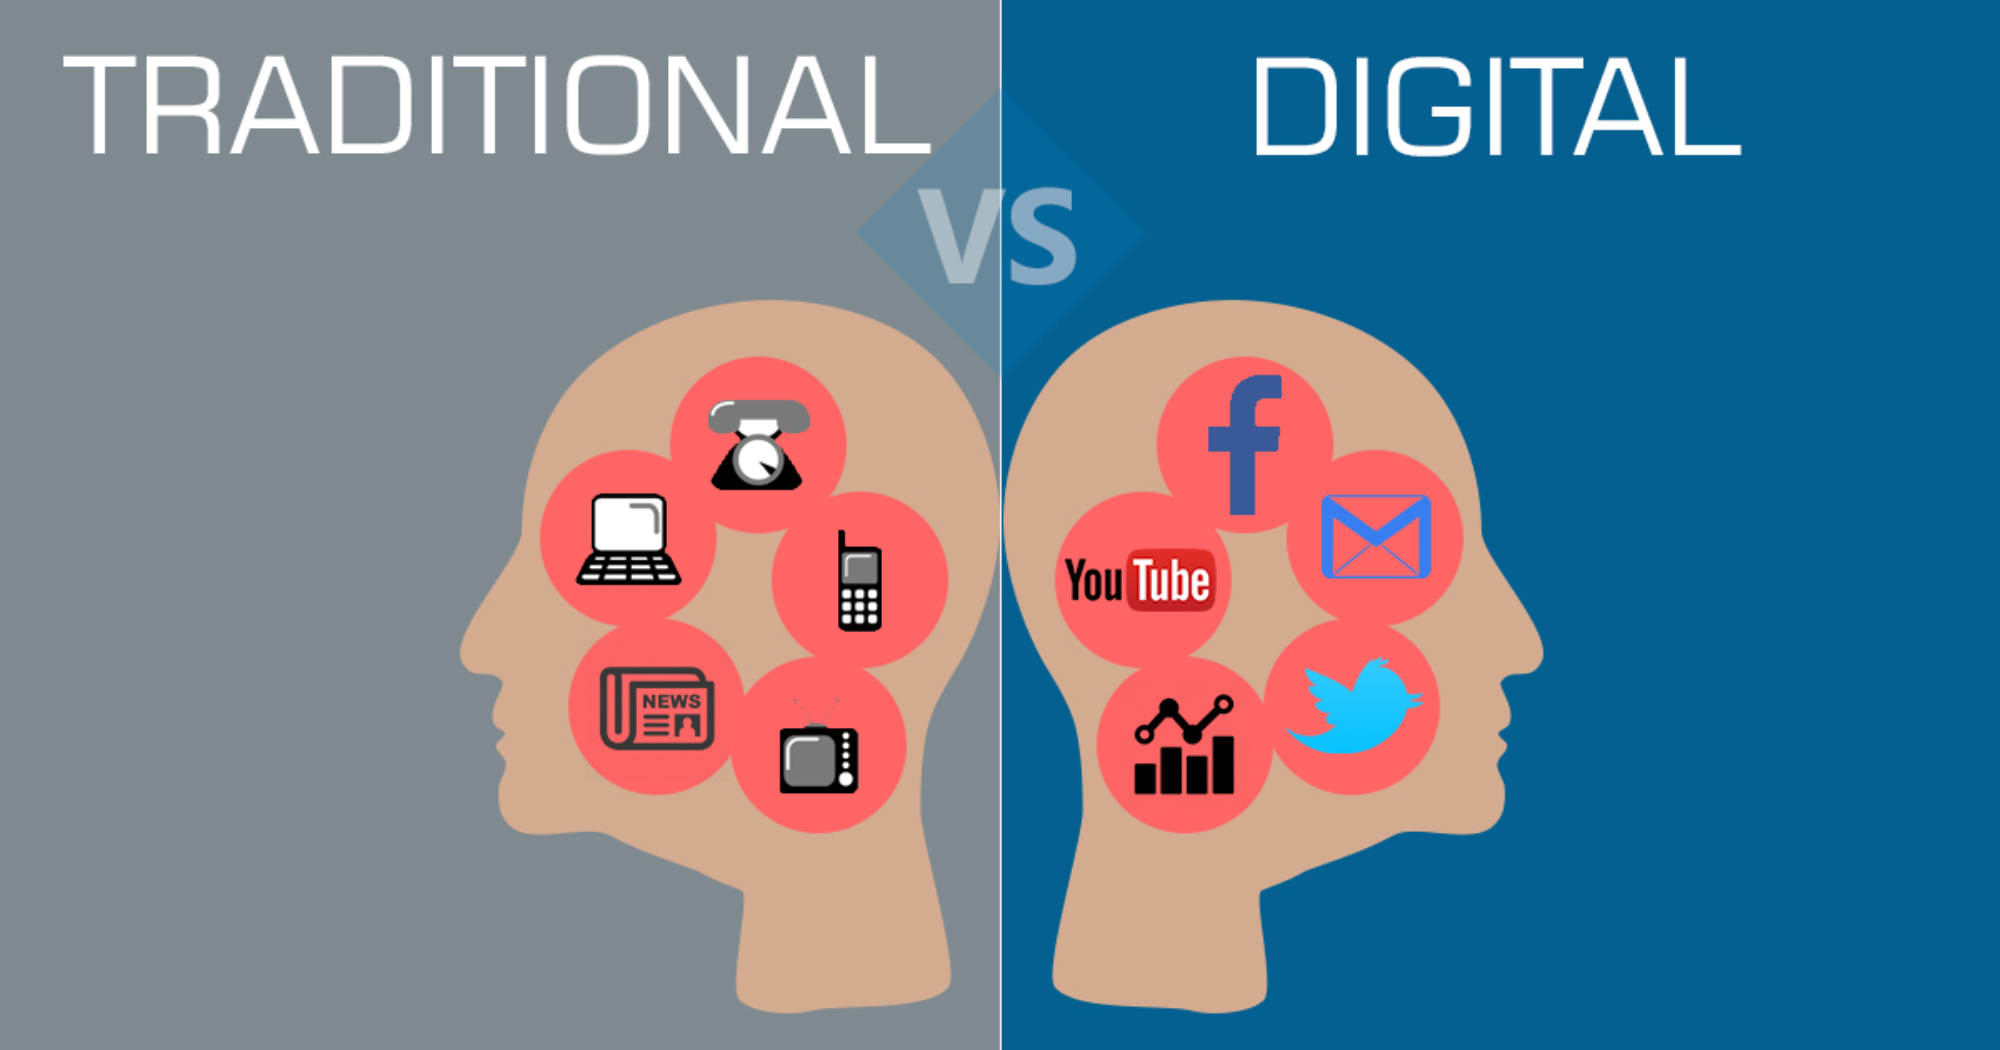 Marketing: Balancing the Traditional and Digital